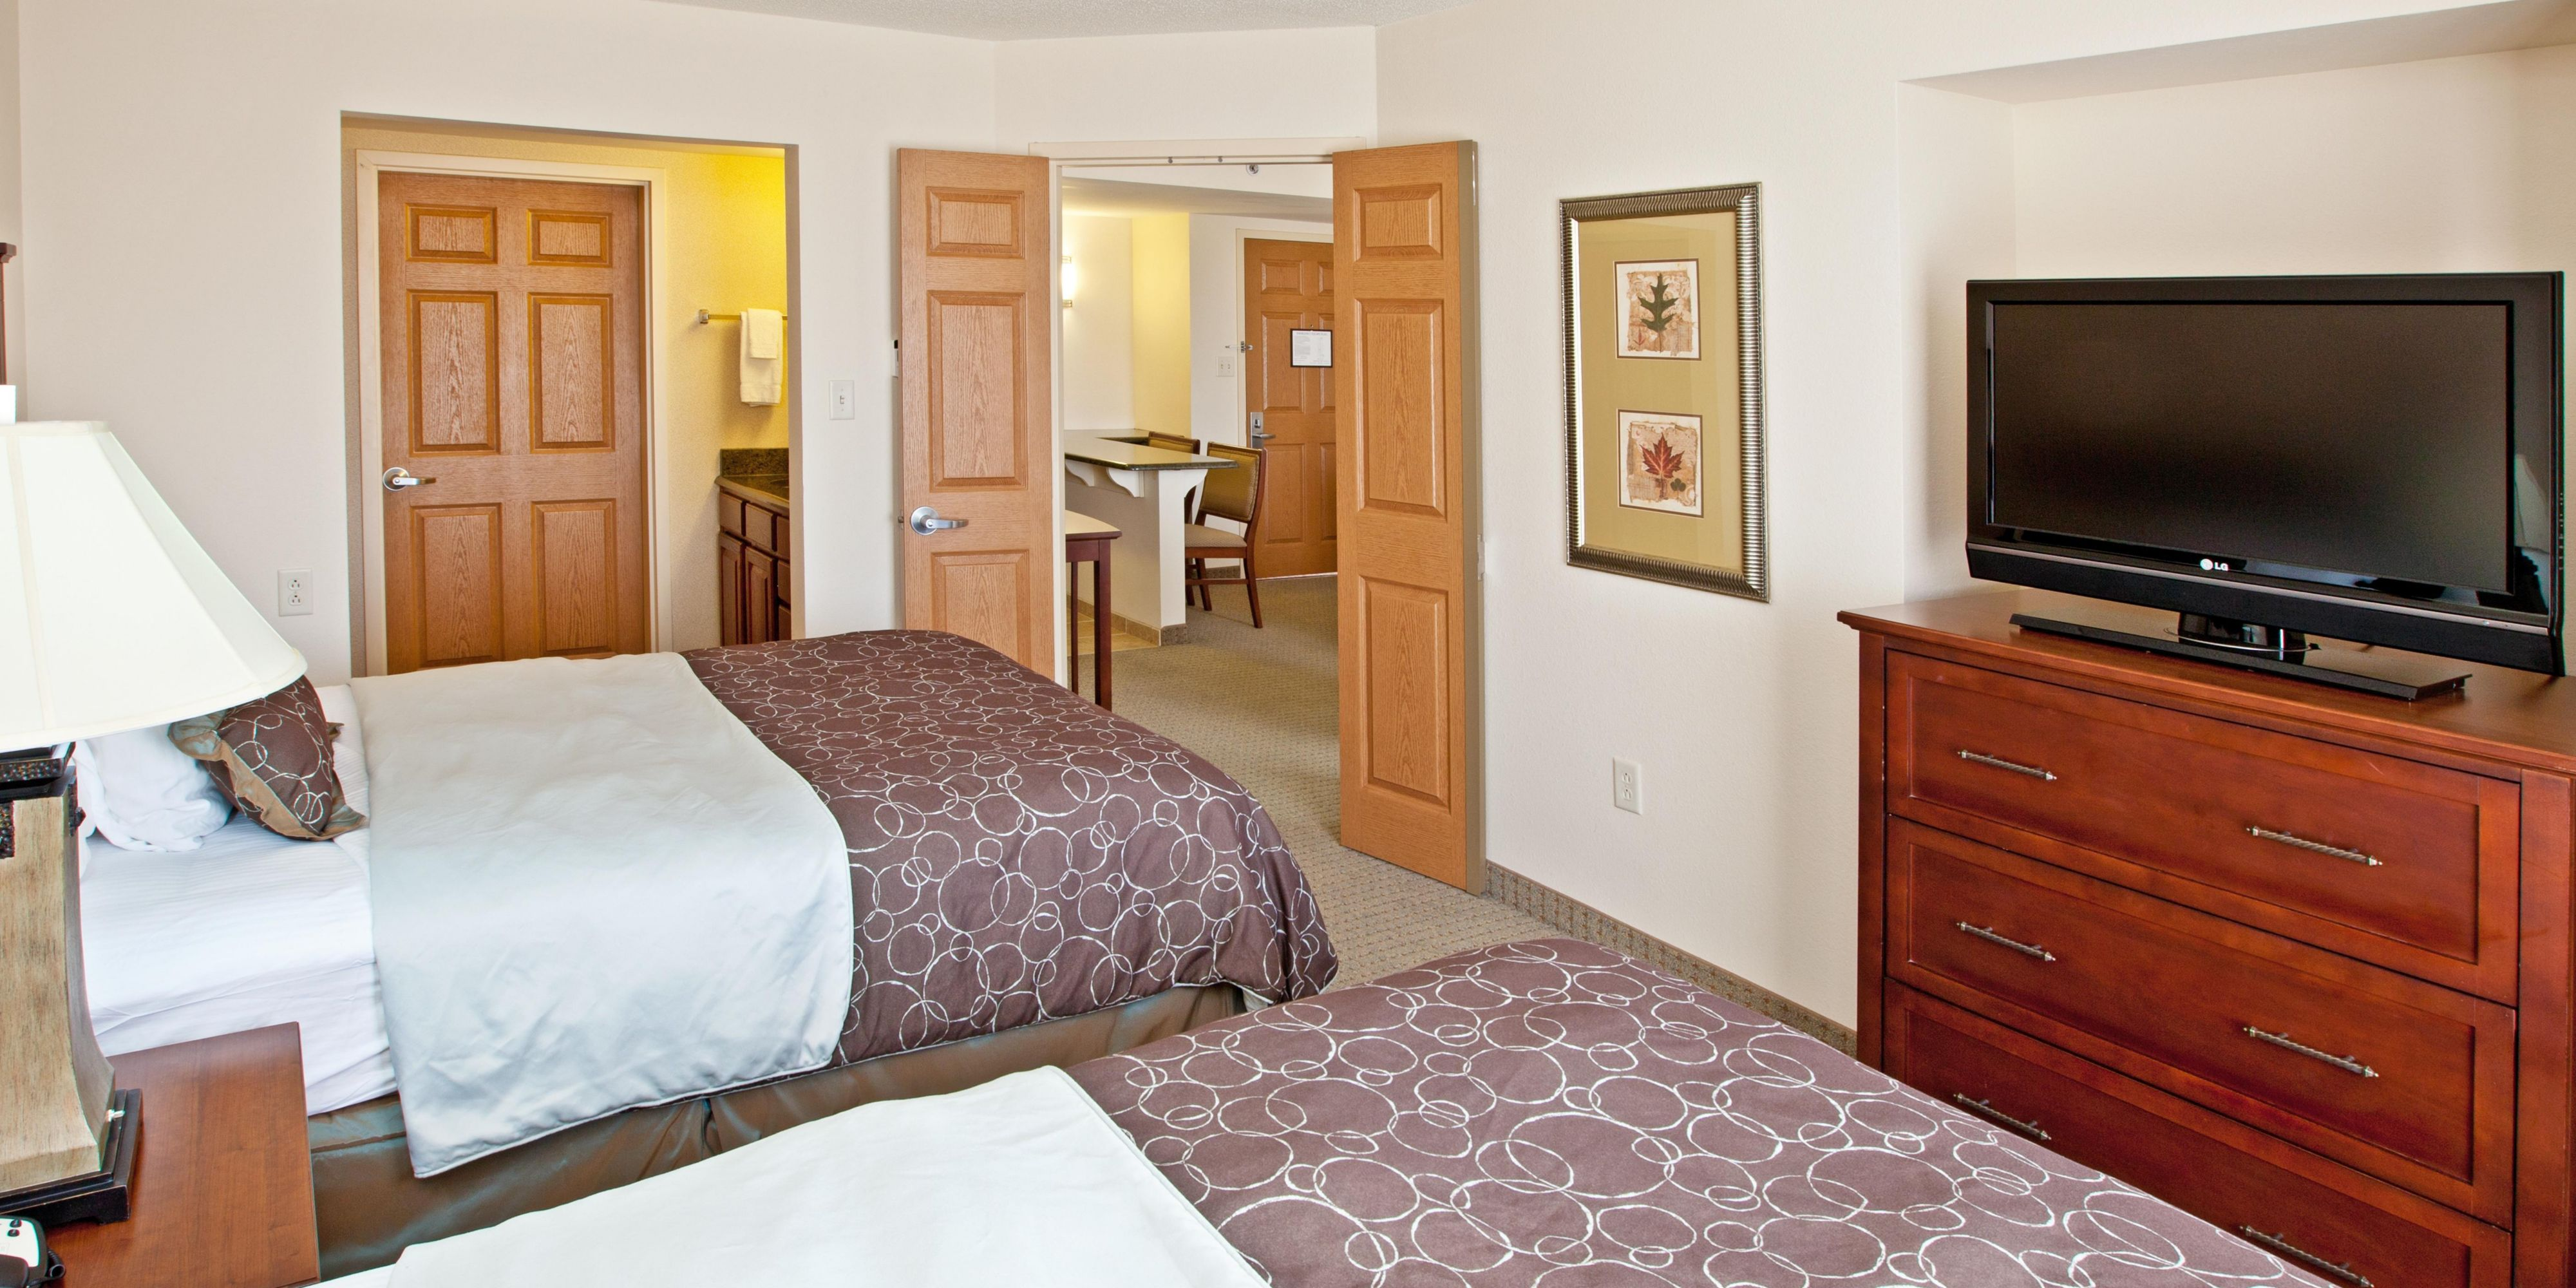 Indianapolis Hotel   Staybridge Suites Indianapolis Downtown Hotel, Indiana